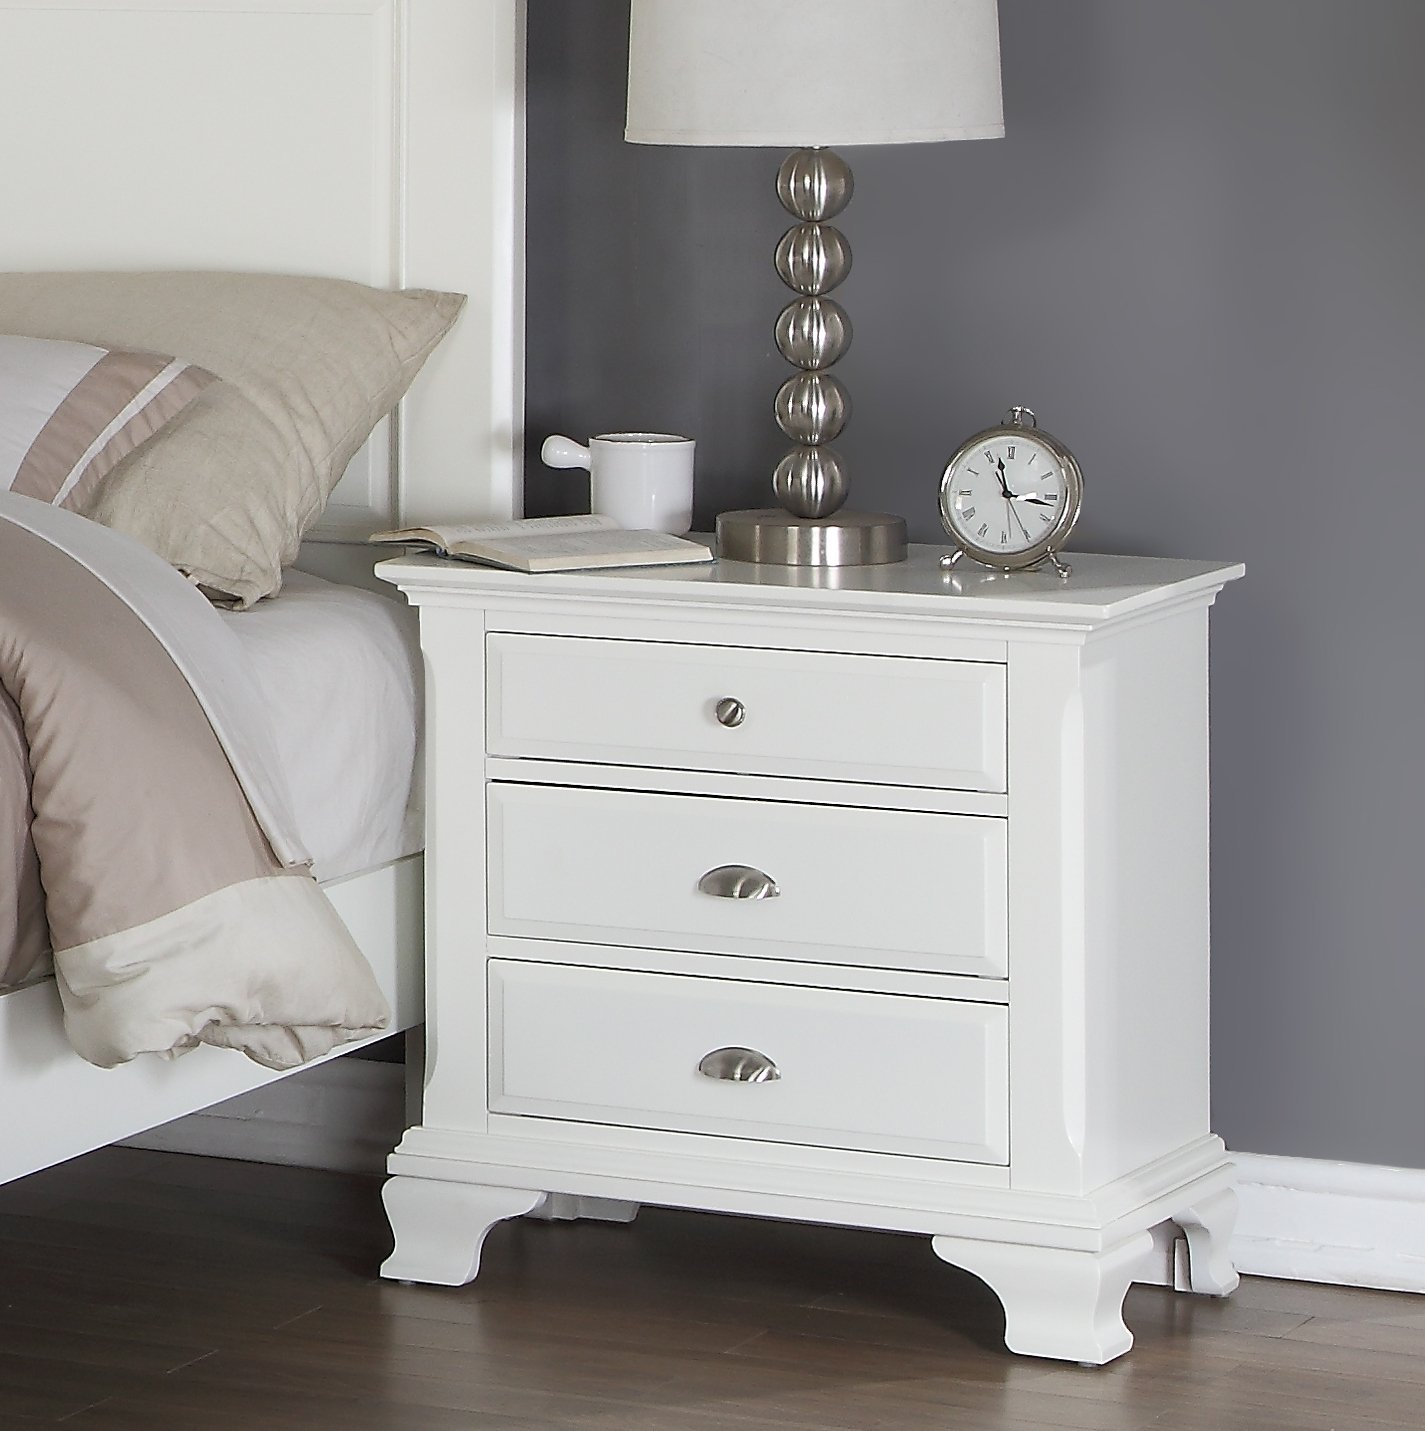 Amazon Roundhill Furniture Laveno 012 White Wood Bedroom